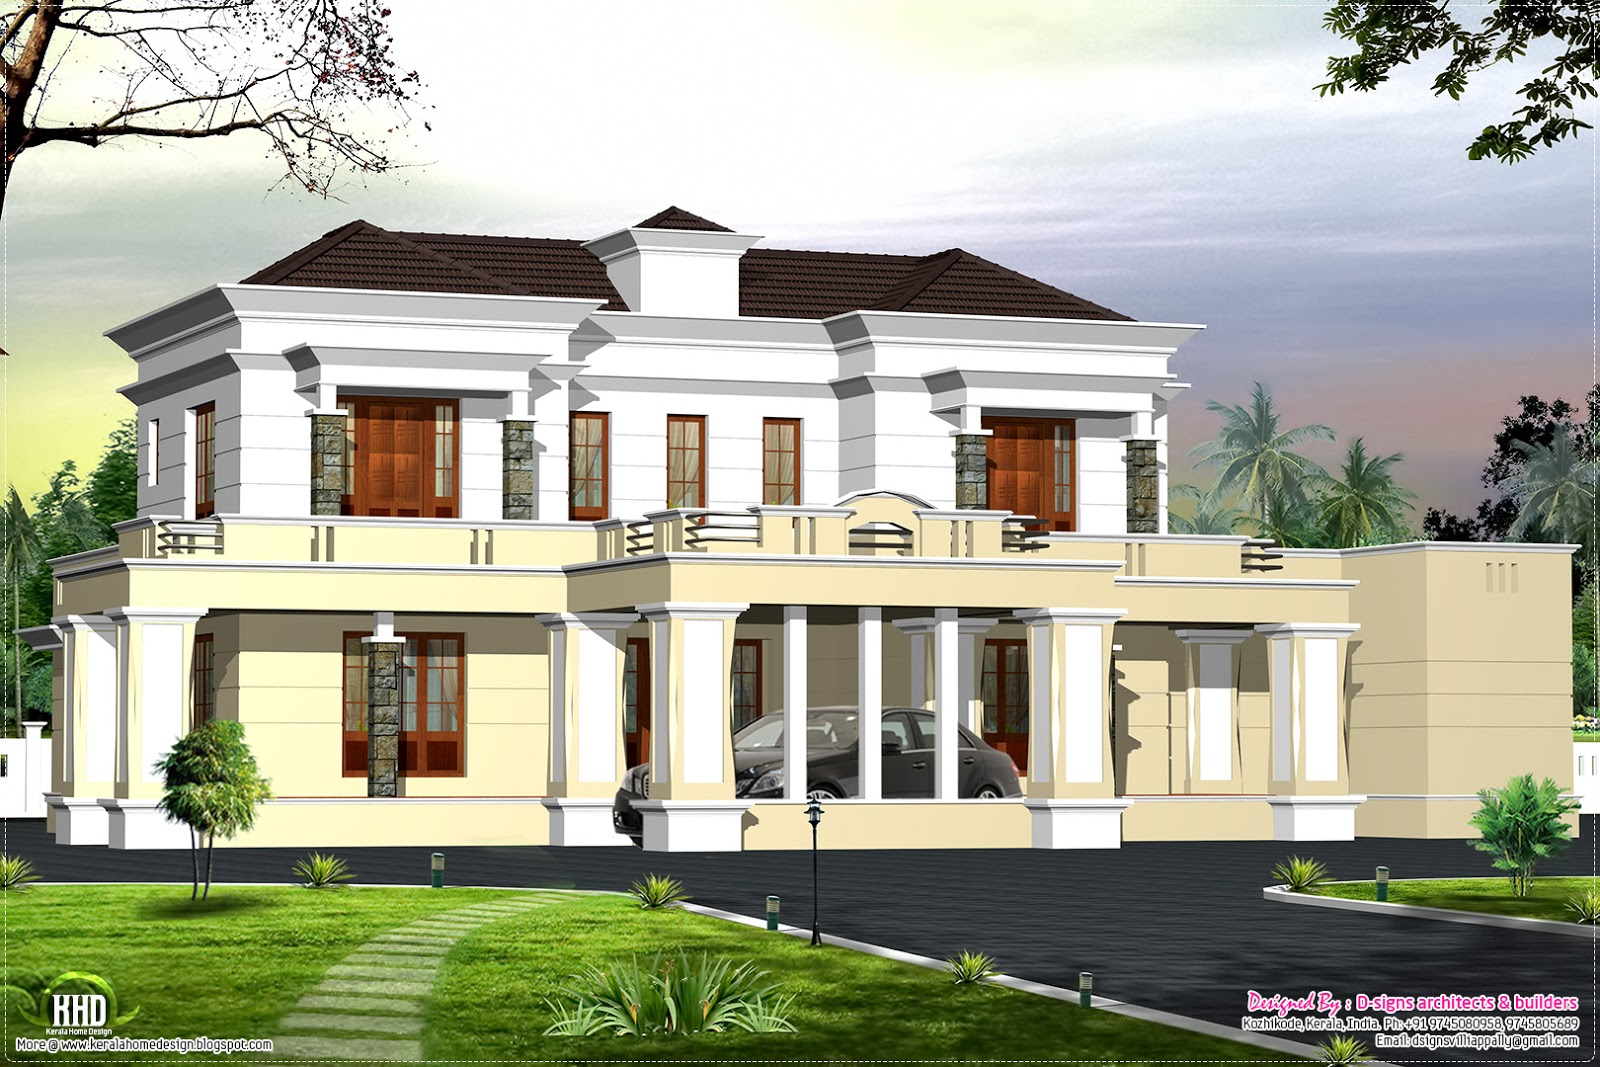 Victorian style luxury home design kerala home design for Luxury farmhouse plans